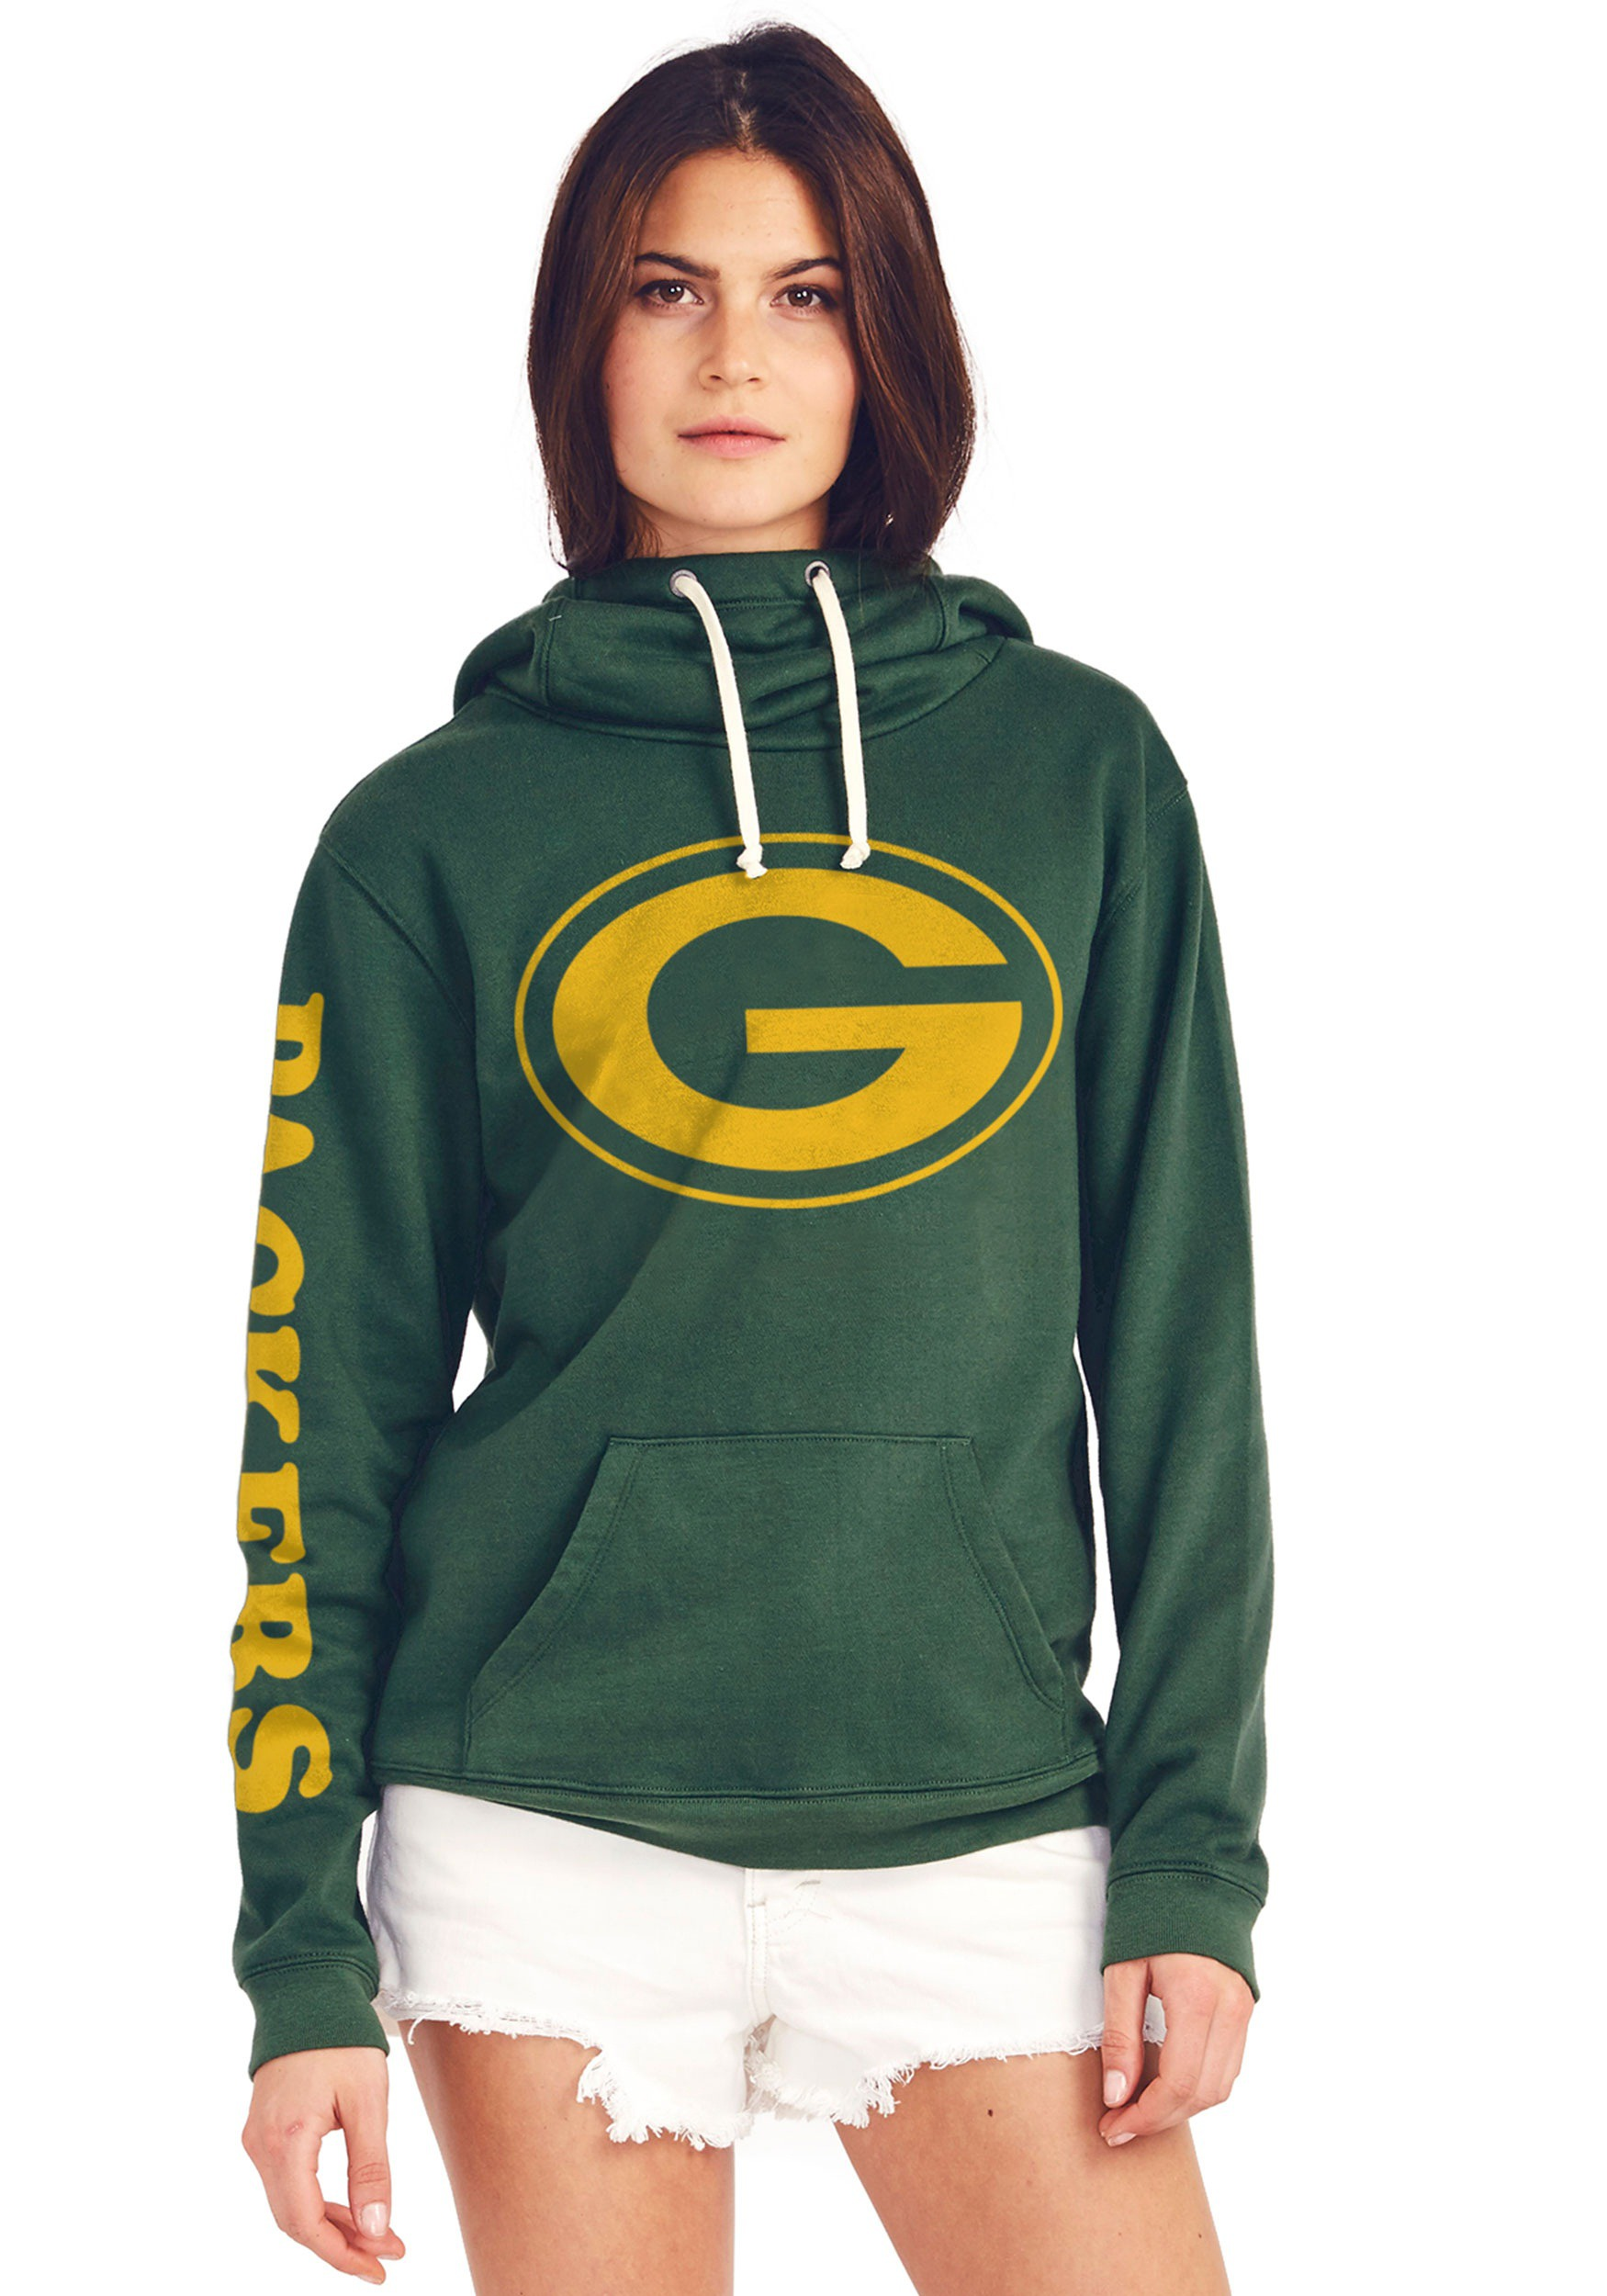 Green Bay Packers Women's Cowl Neck Hooded Sweatshirt